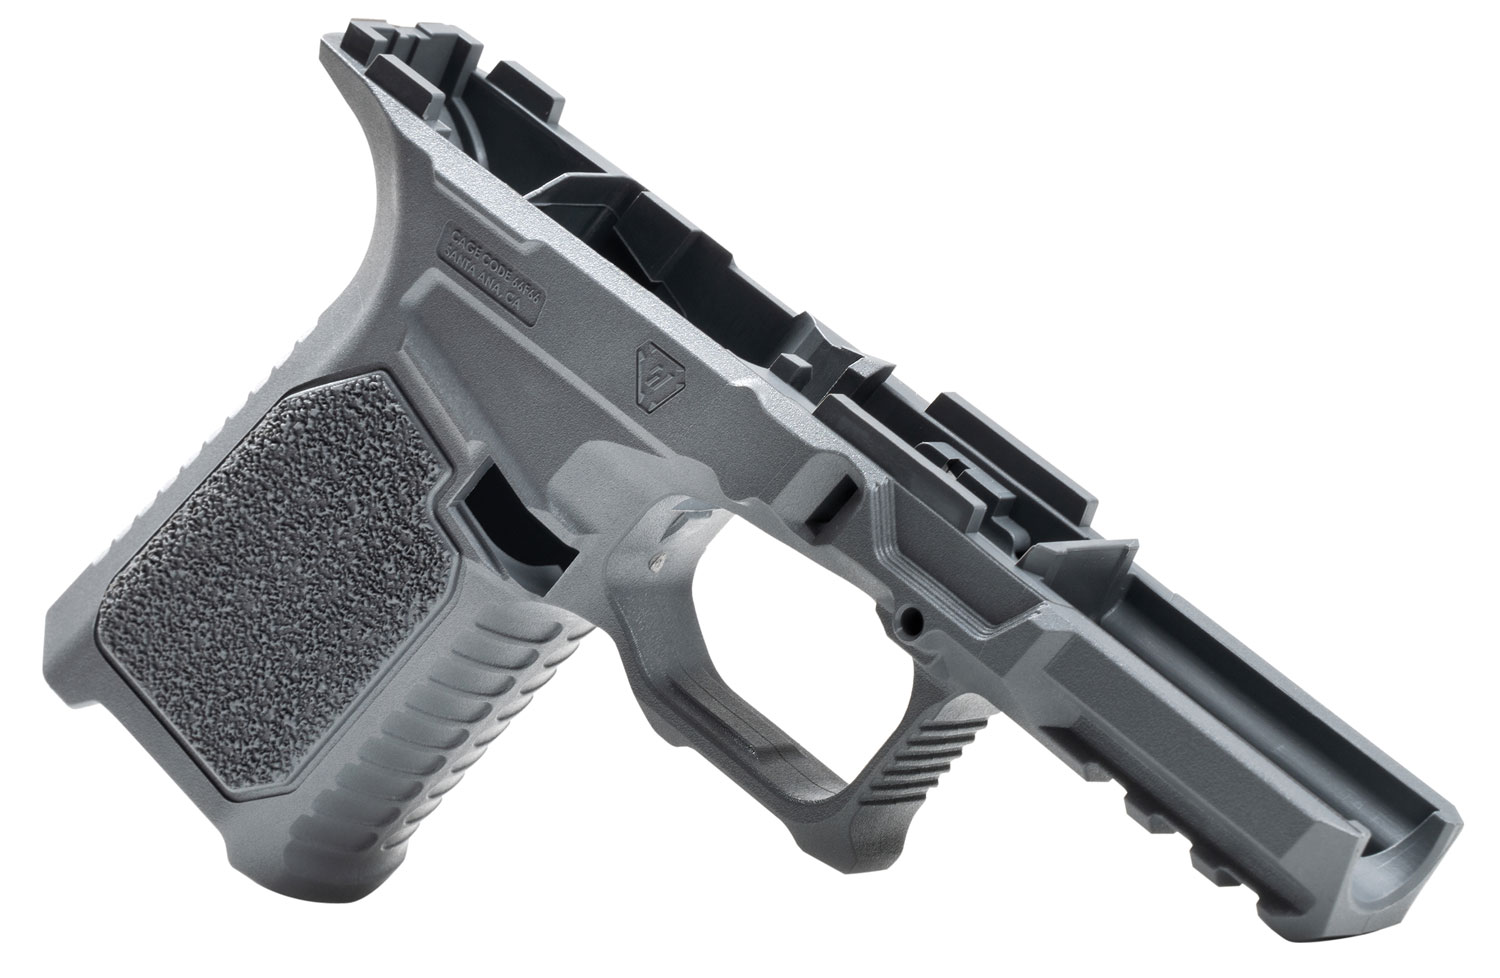 Strike STRIKE80-C-GY 80% Compact Pistol Frame Kit fits Glock 19/23 Gen3 Gray Polymer Aggressive Texture Grip